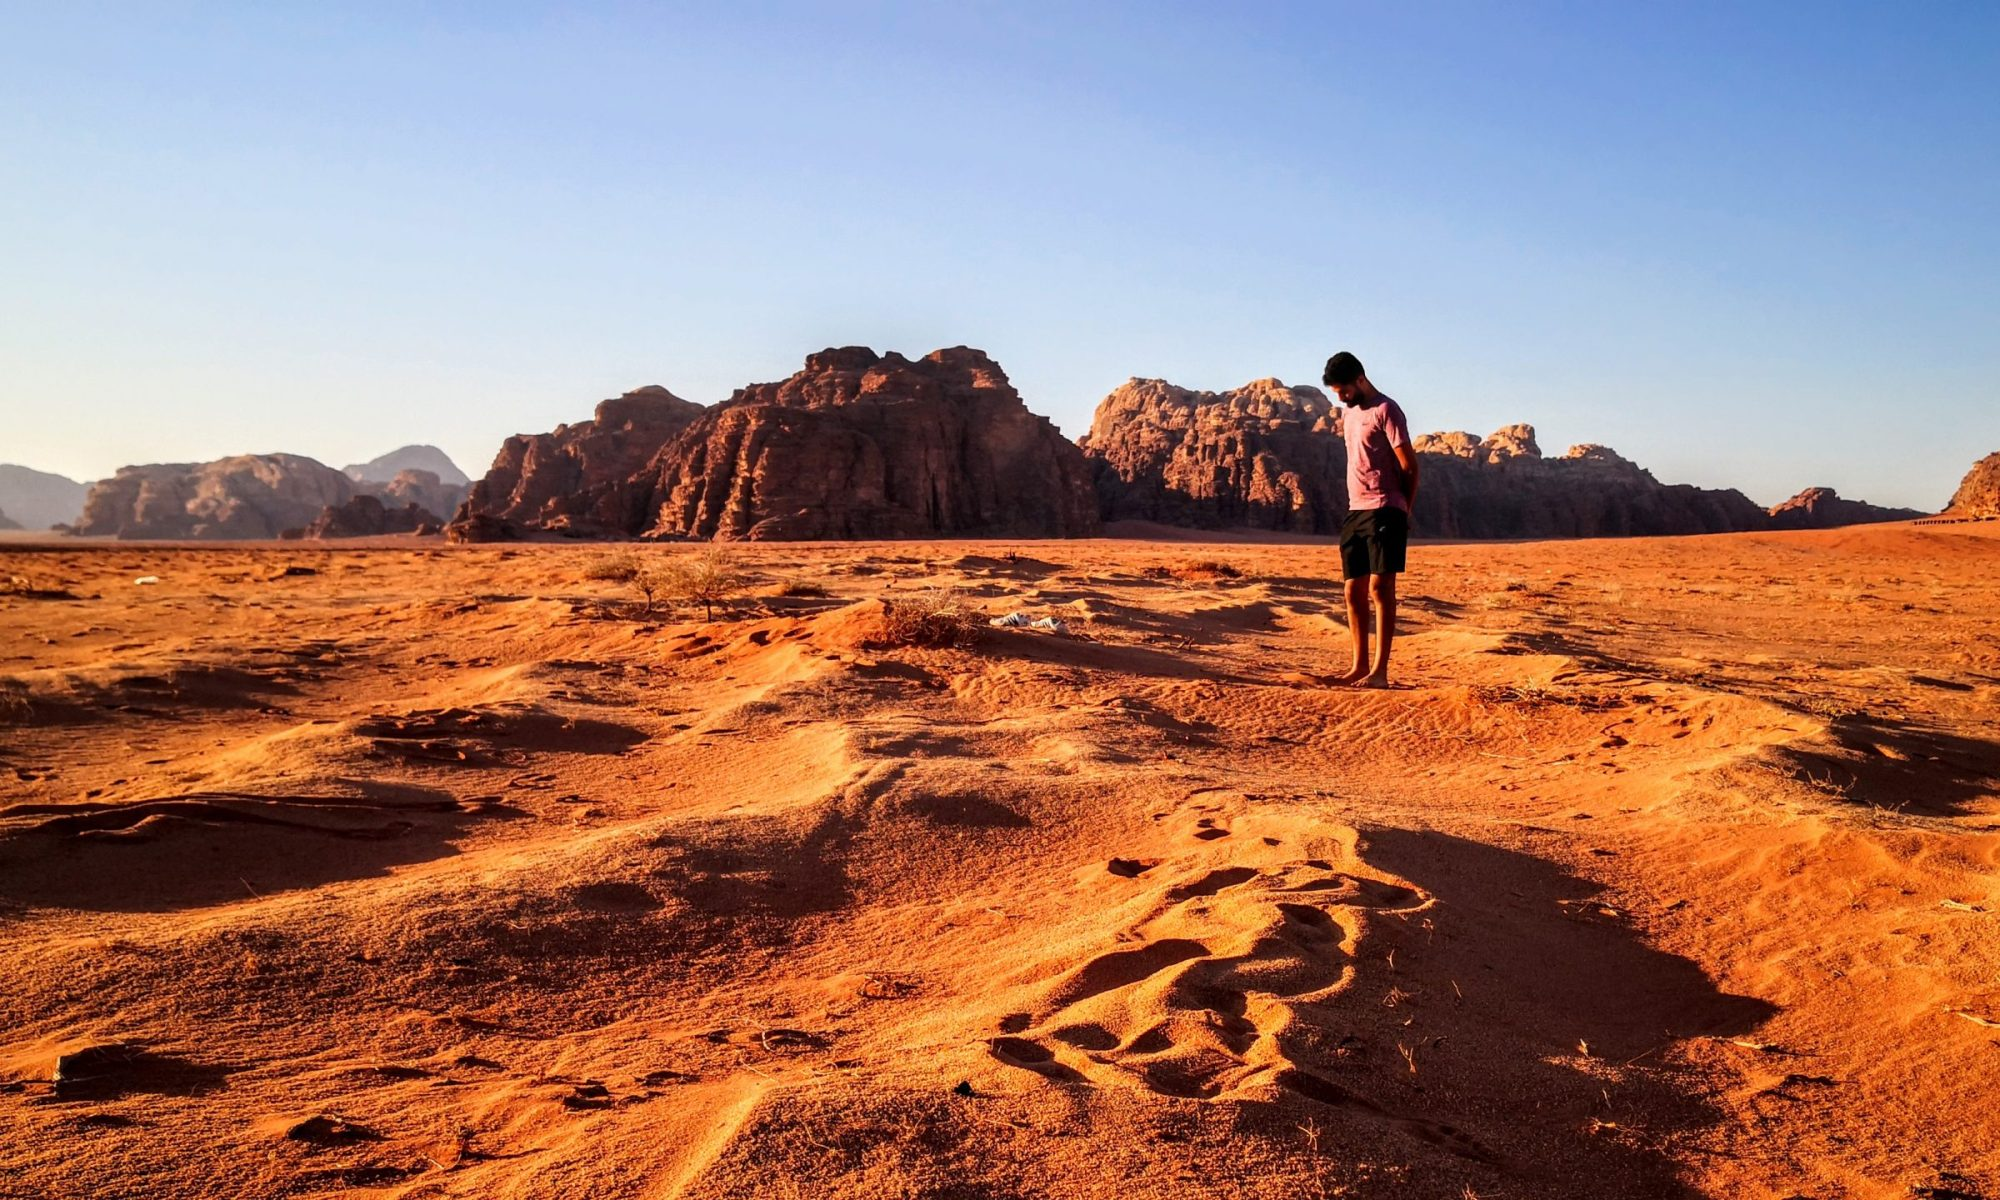 Person standing in the sand of Wadi Rum desert with rock formations in the back - one of the best spots in Jordan